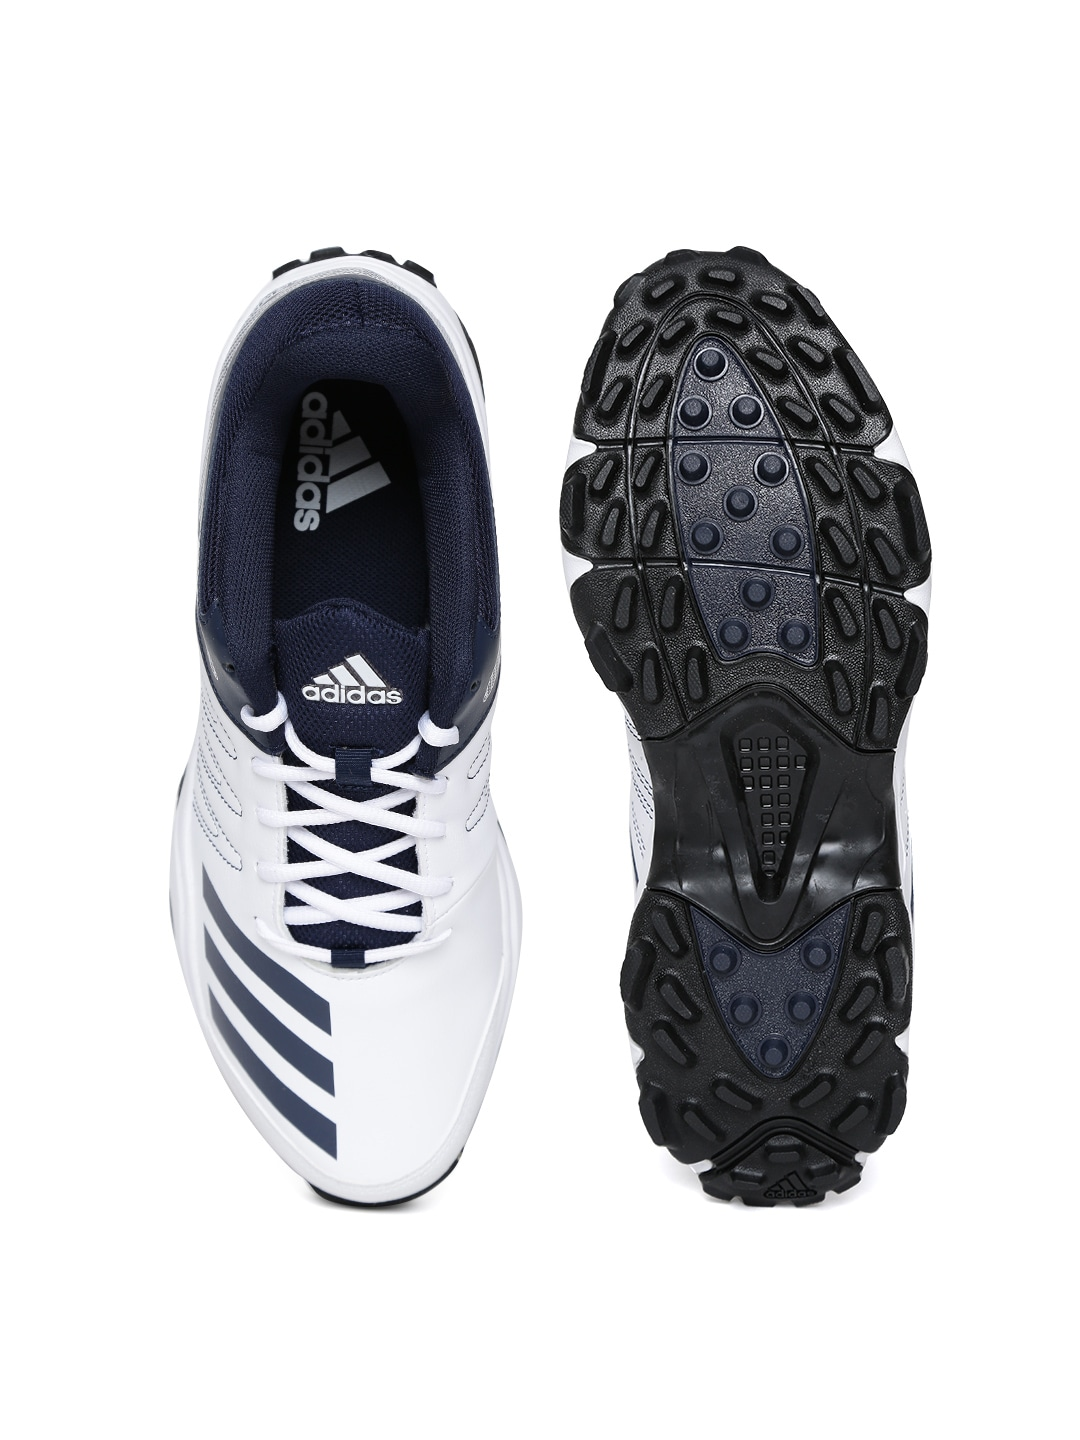 adidas long shoes online